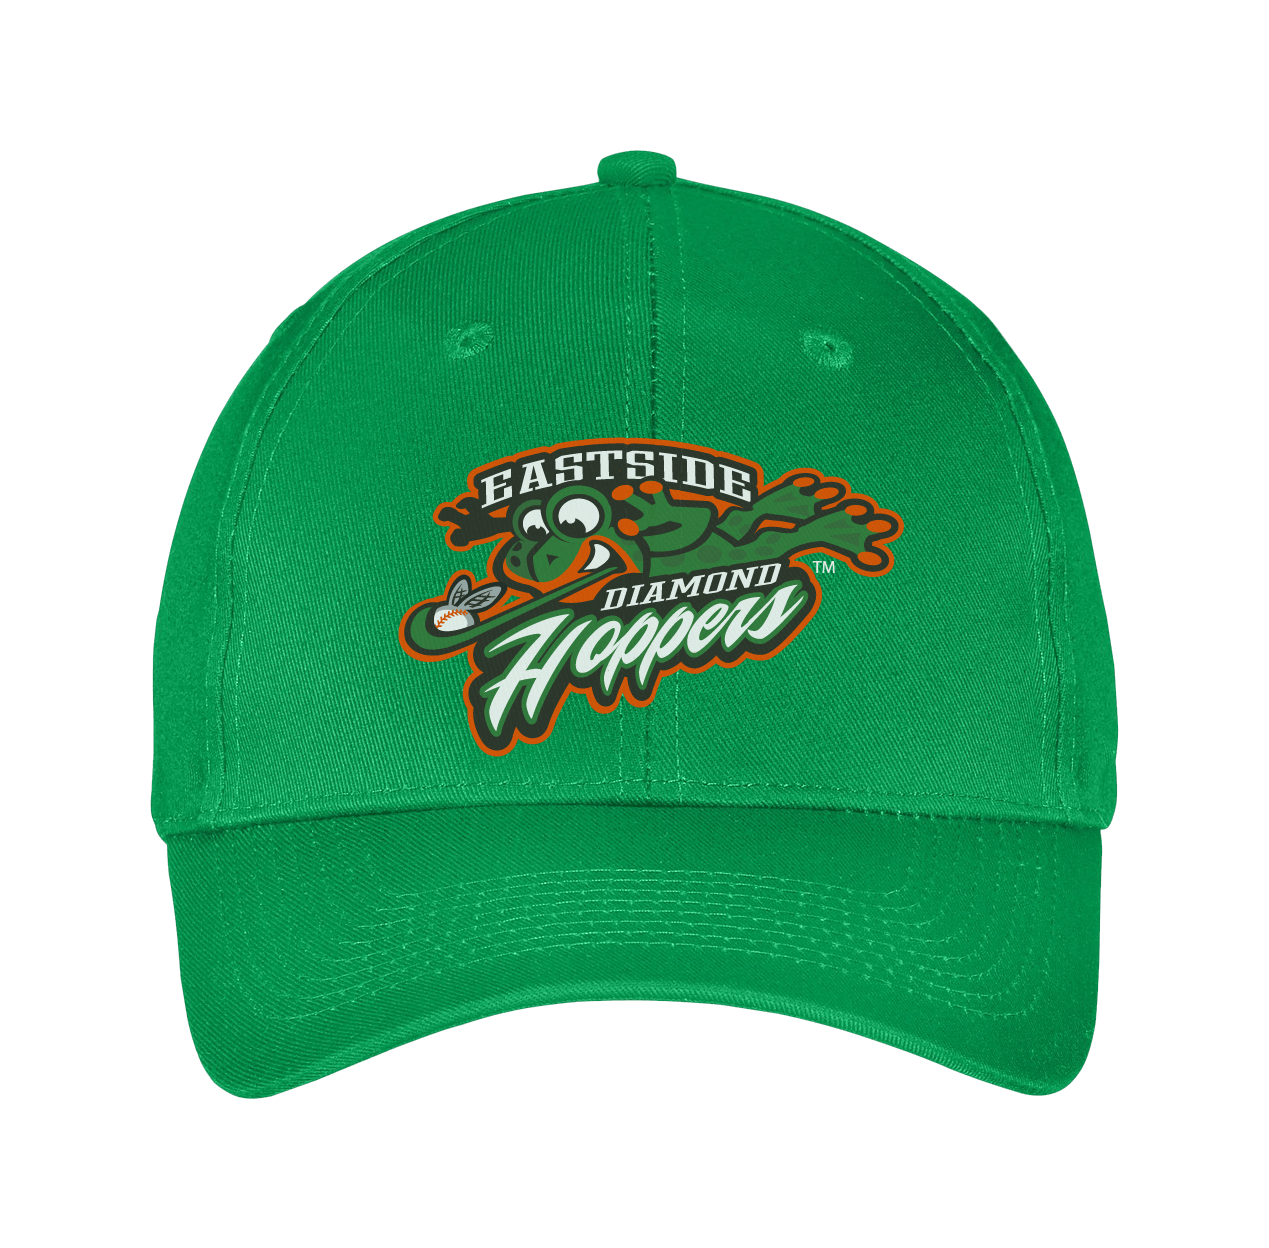 32c6621cdbf Diamond Hoppers Adjustable Hat – United Shore Professional Baseball ...